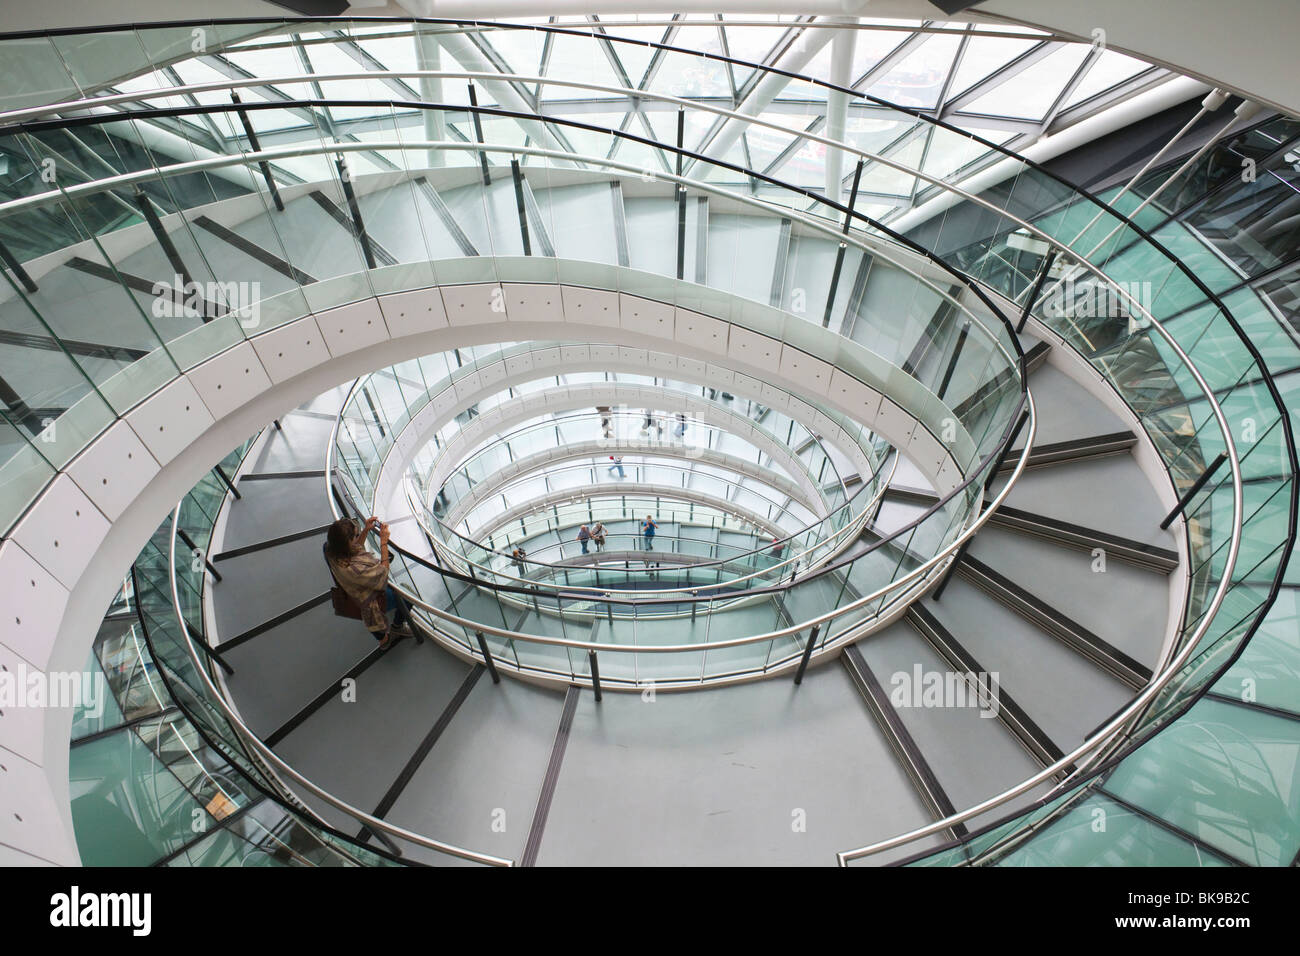 Helical walkway in a city hall, Southwark, London, England Stock Photo